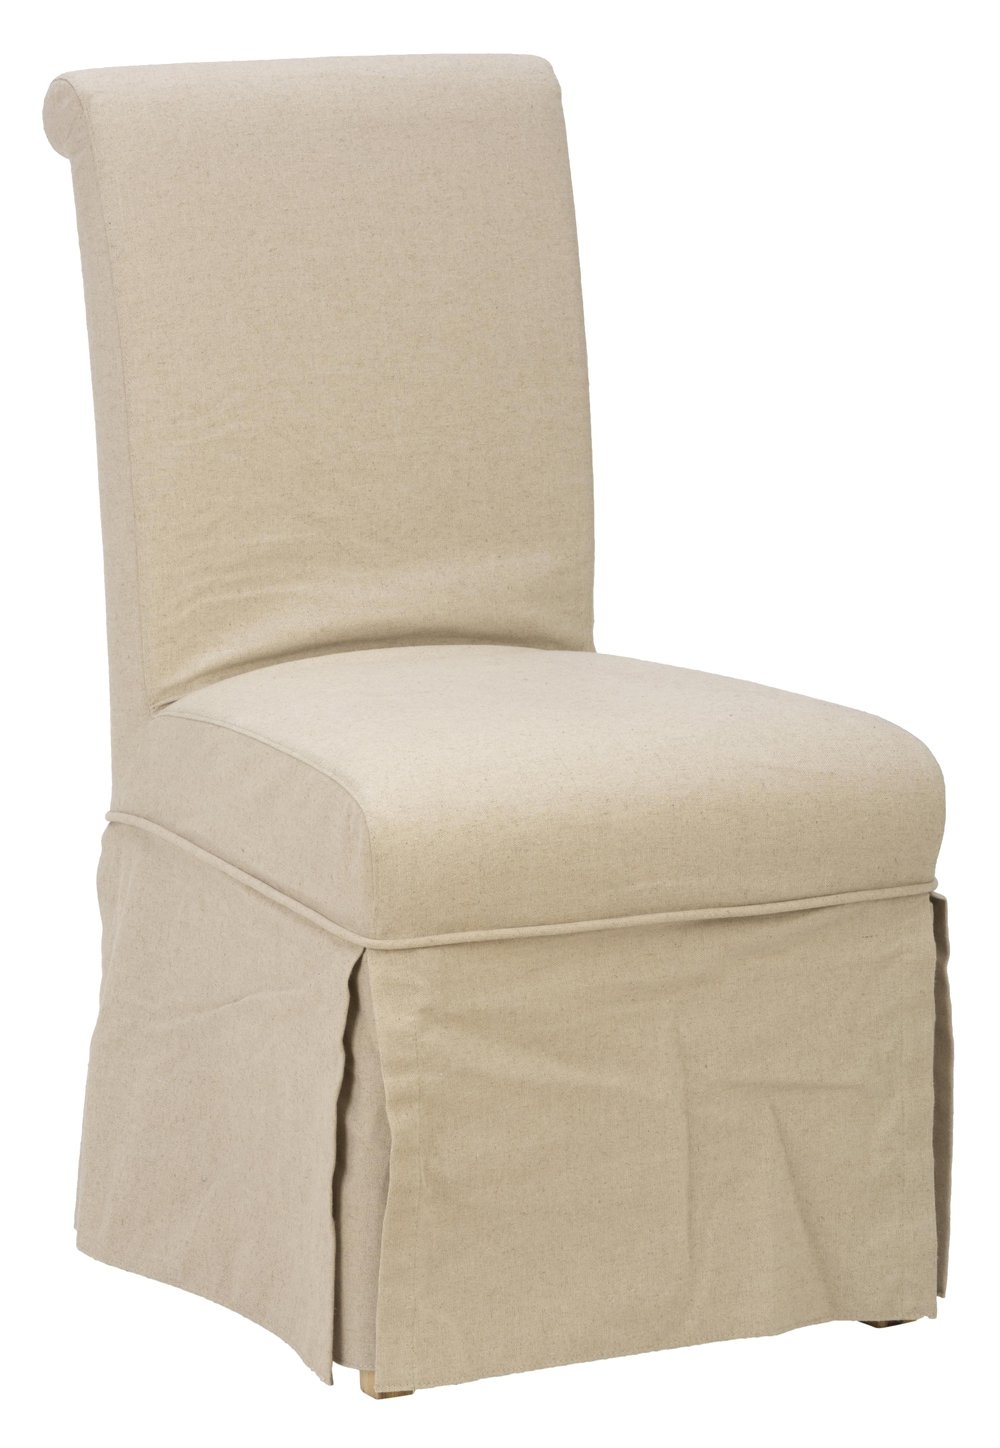 parsons chair slip cover